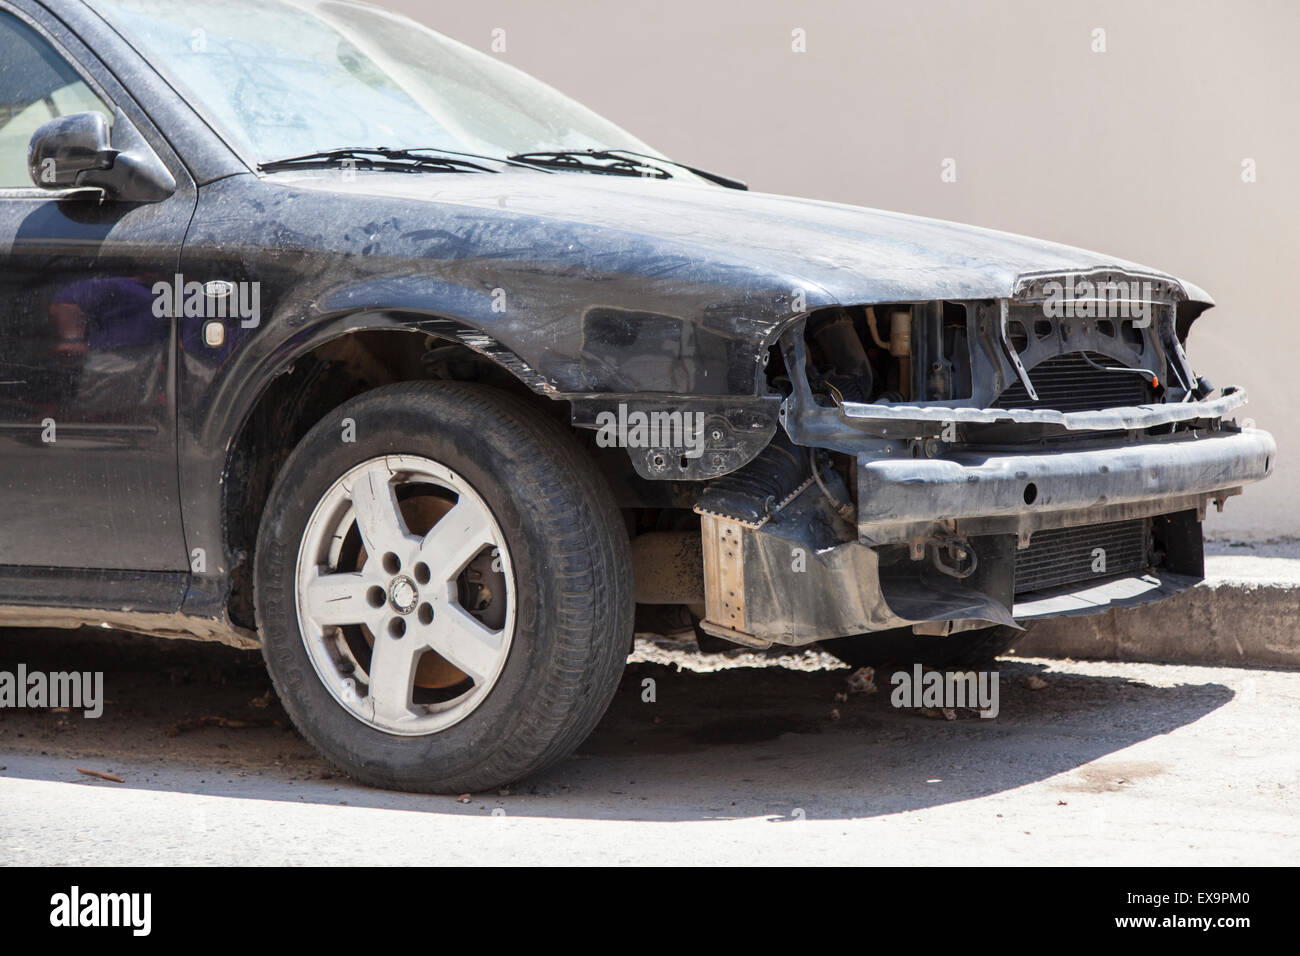 Chania Town, Crete Island, Greece - JUNE 17, 2013: Crashed Abandoned Car On Street - Stock Image